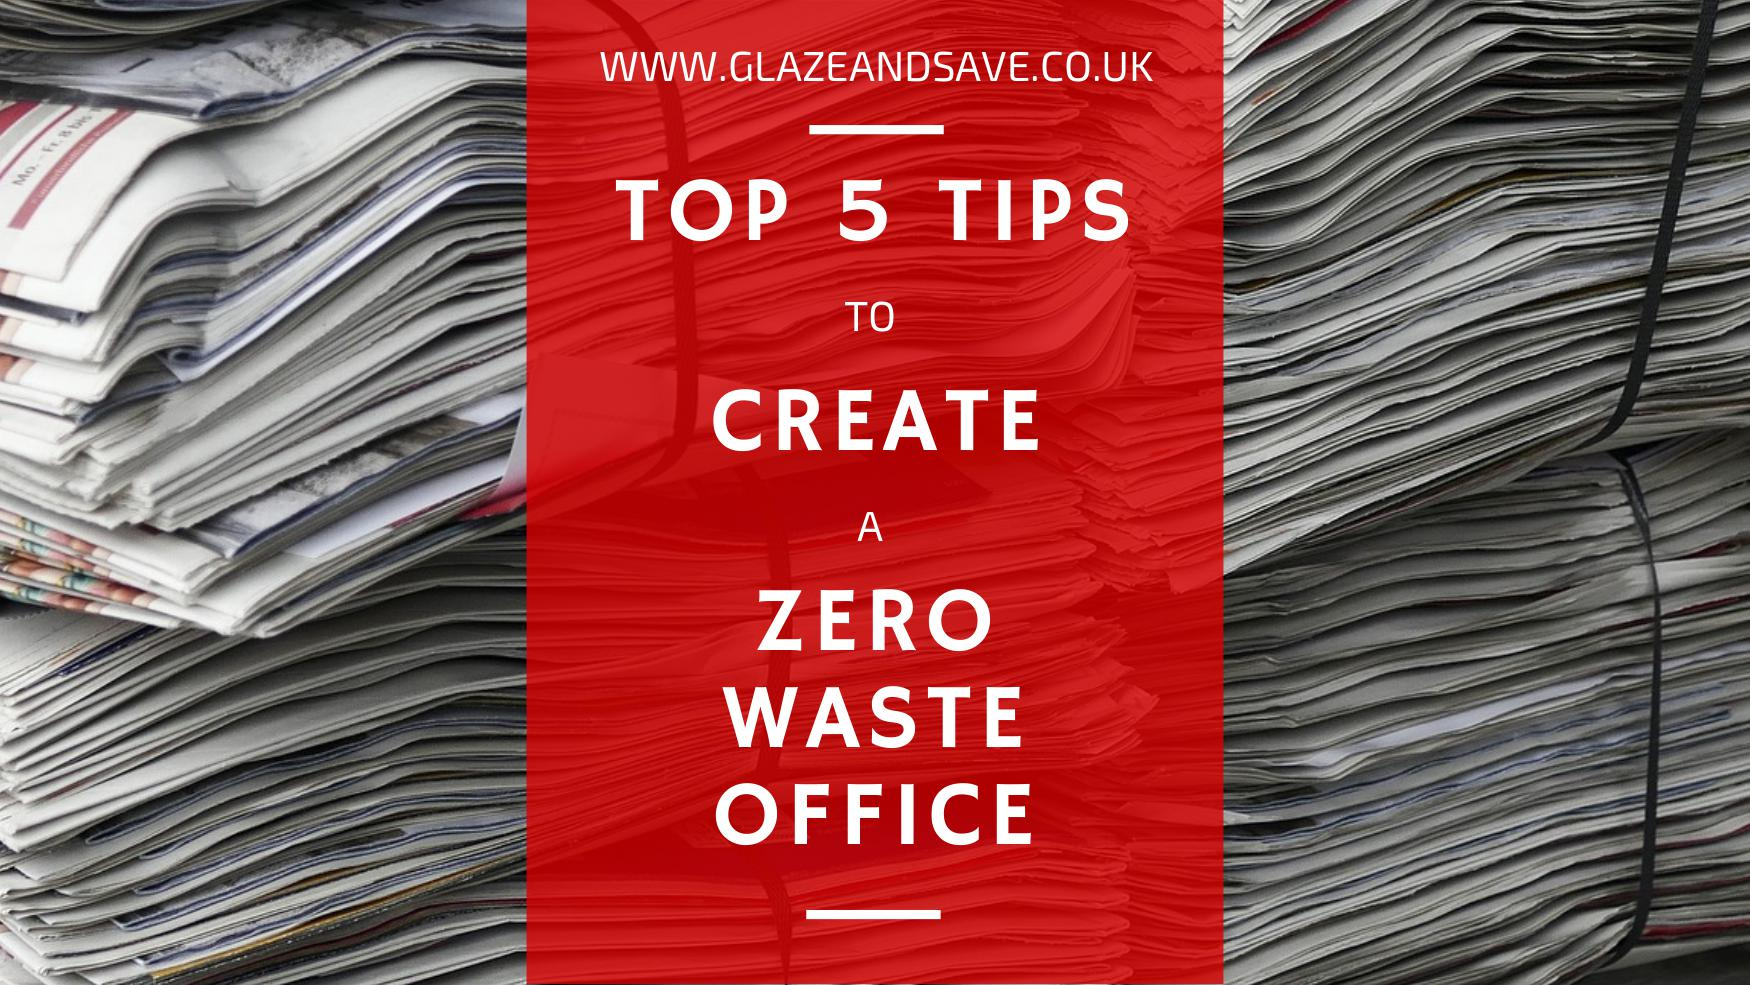 Top 5 Tips to Create a Zero Waste Office By Glaze and Save bespoke magnetic secondary glazing and draughtproofing based in Perth, Scotland and installing throughout from Aberdeen to Edinburgh, Dundee to Glasgow.